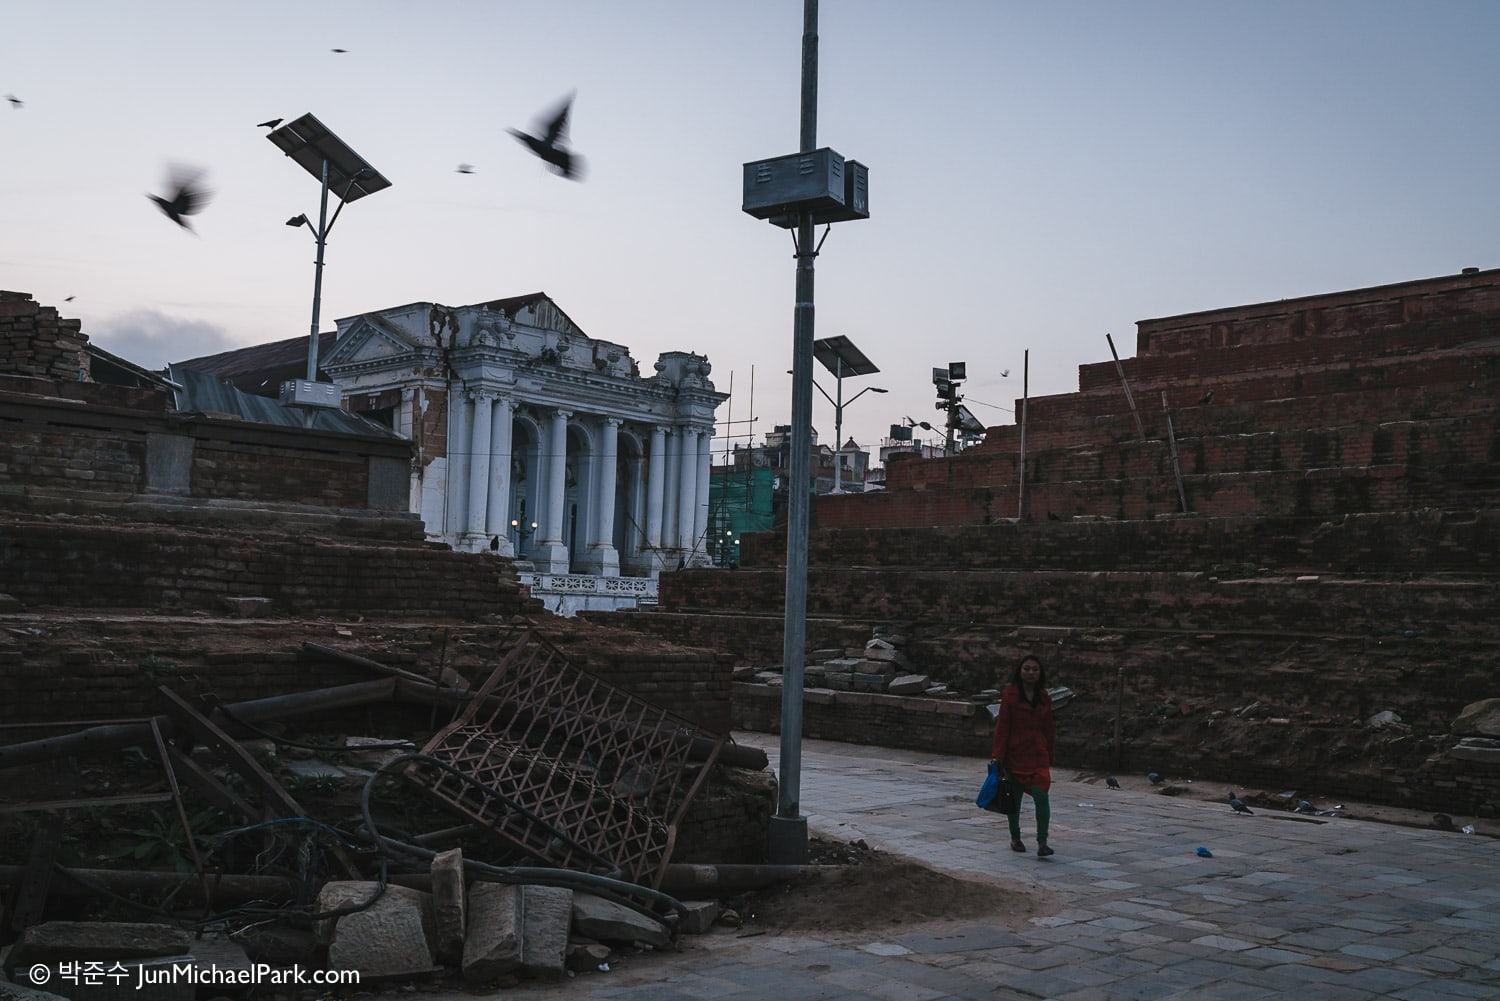 Kathmandu Durbar Square, Nepal. The temple of Maju Dega (right) and Narayan Temple (left) were completely destroyed by the earthquake, and reconstruction efforts are still in progress. 02.11.15